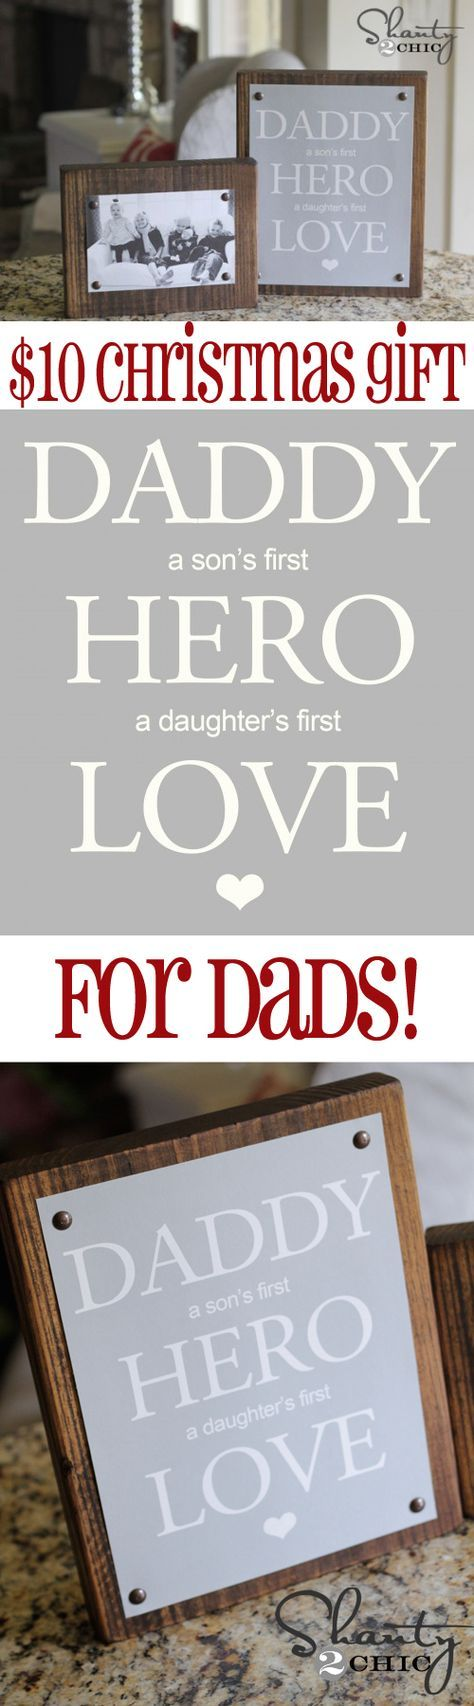 Daddy first christmas gift ideas